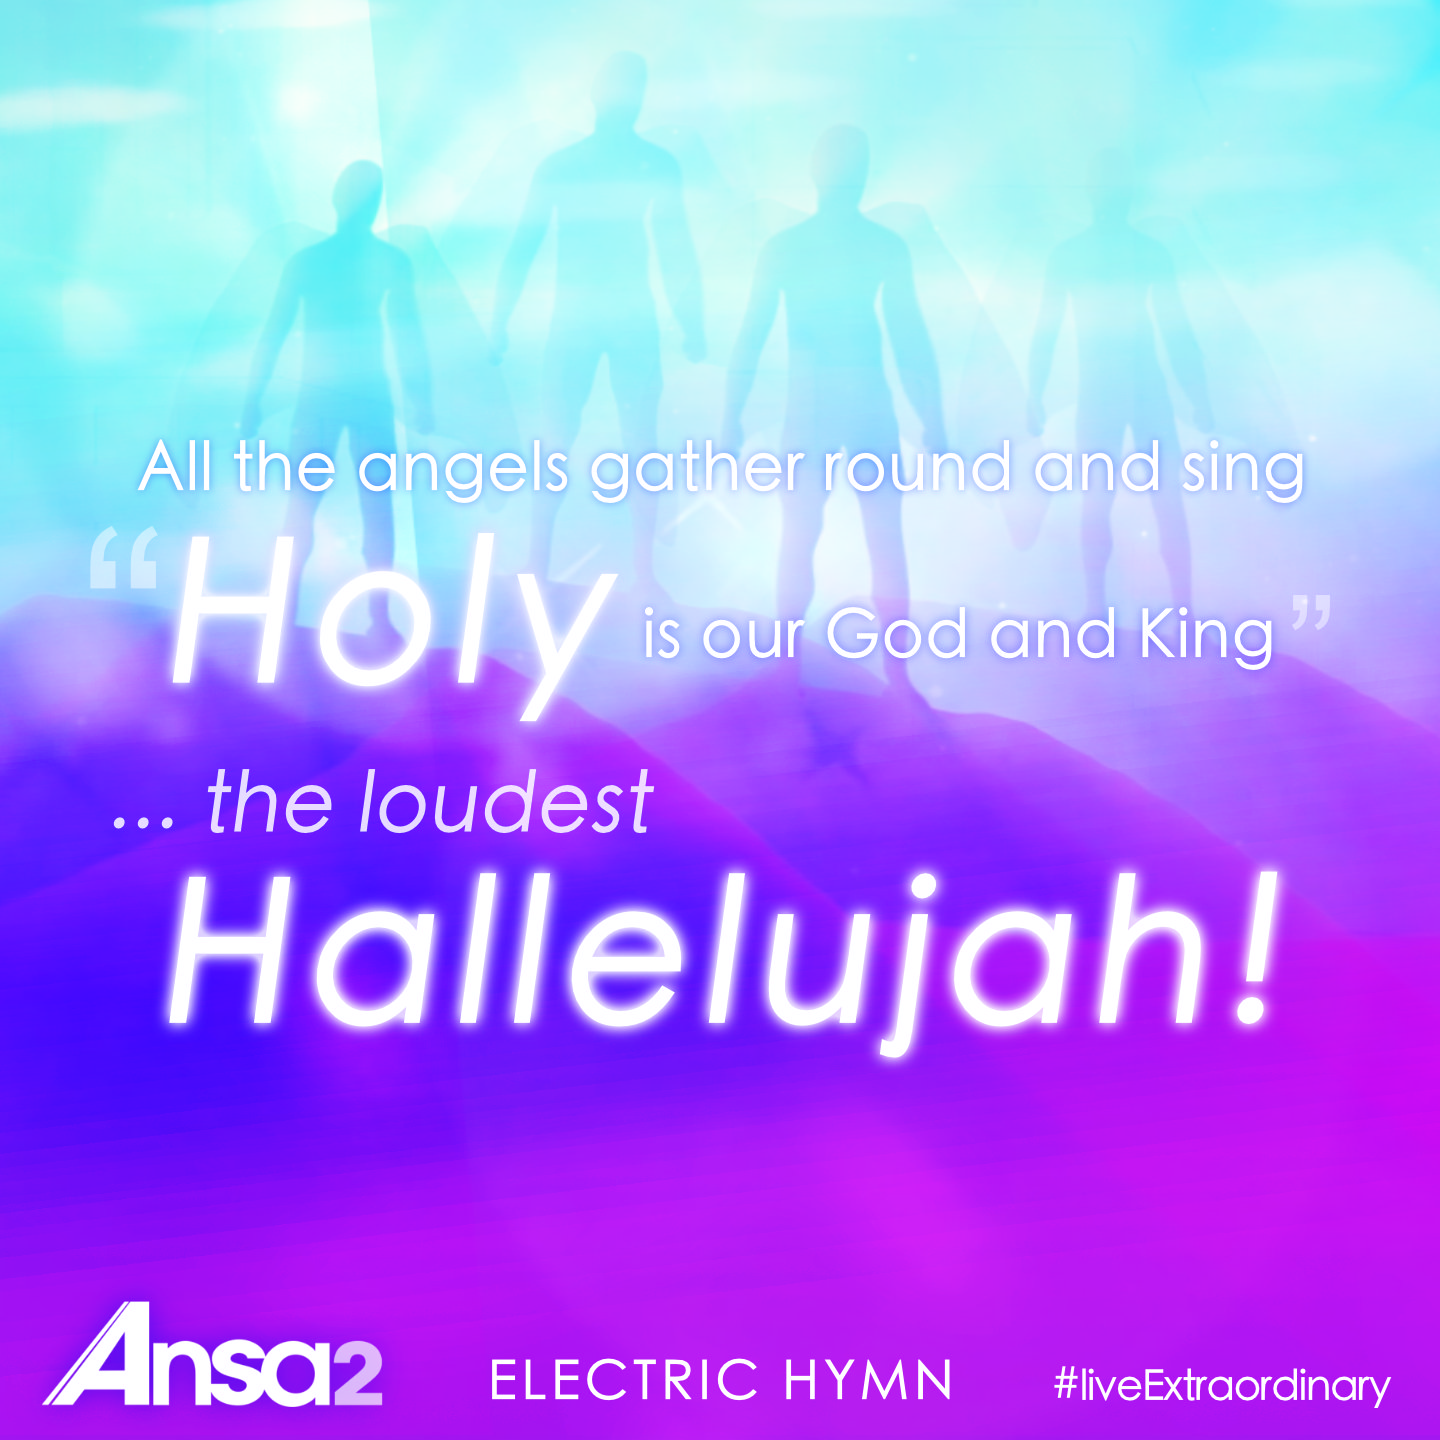 Electric Hymn lyrics